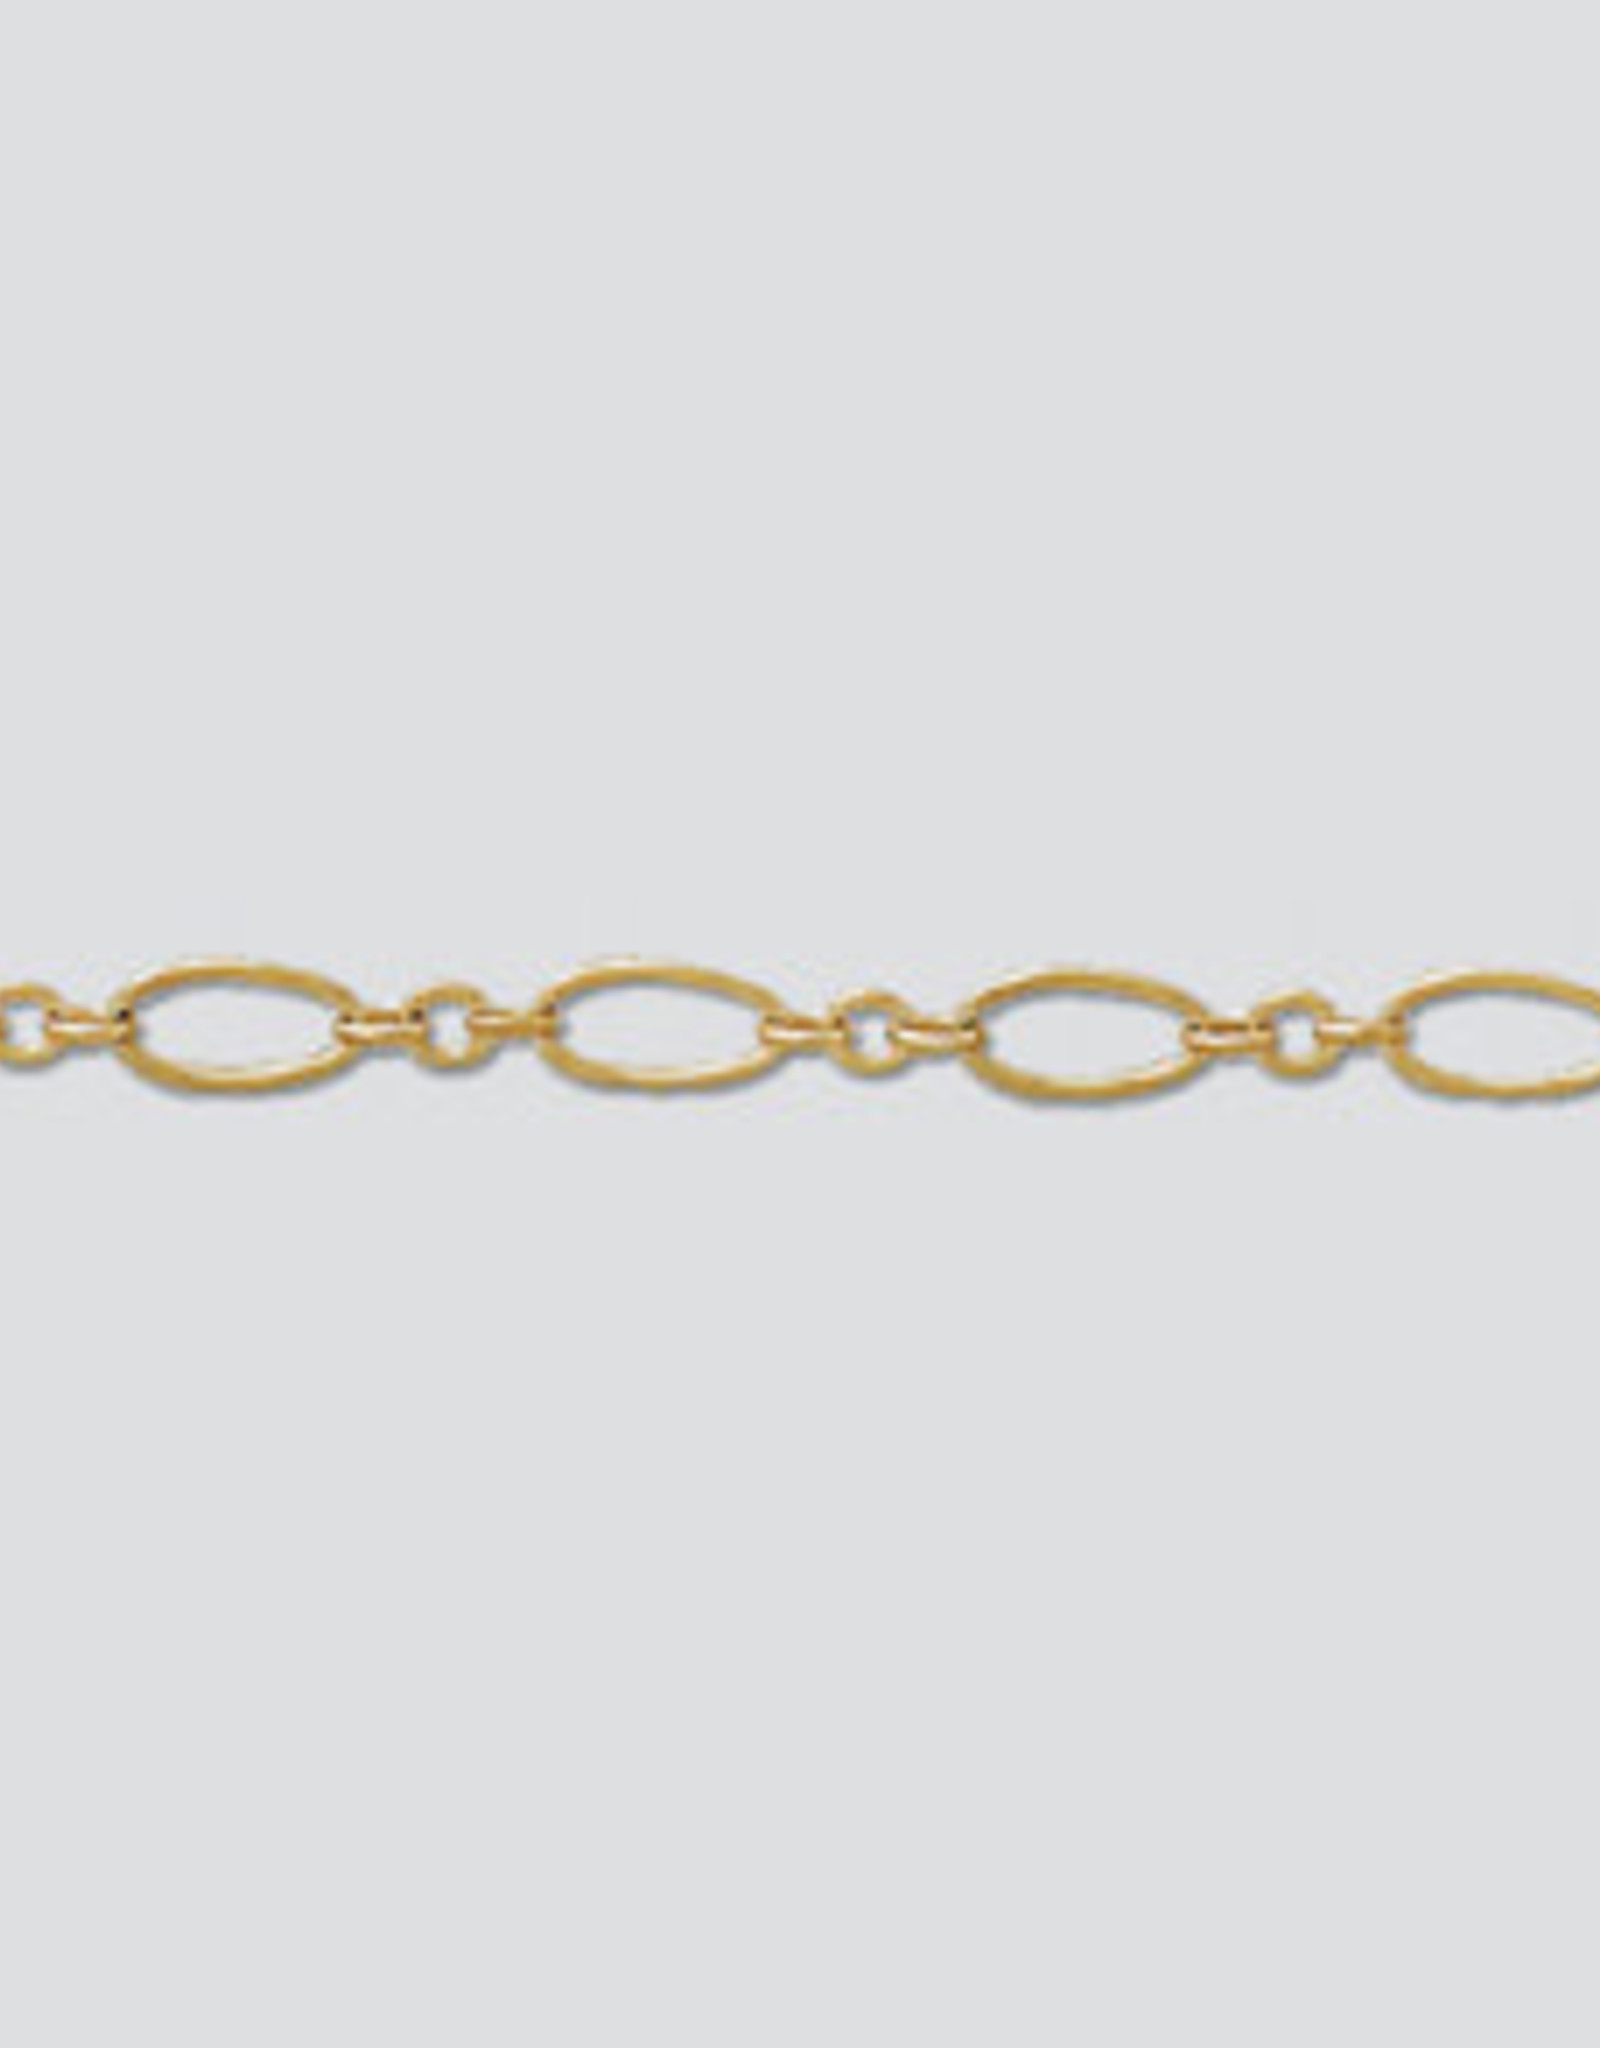 Oval Long & Short Chain 14k Gold Filled Inch